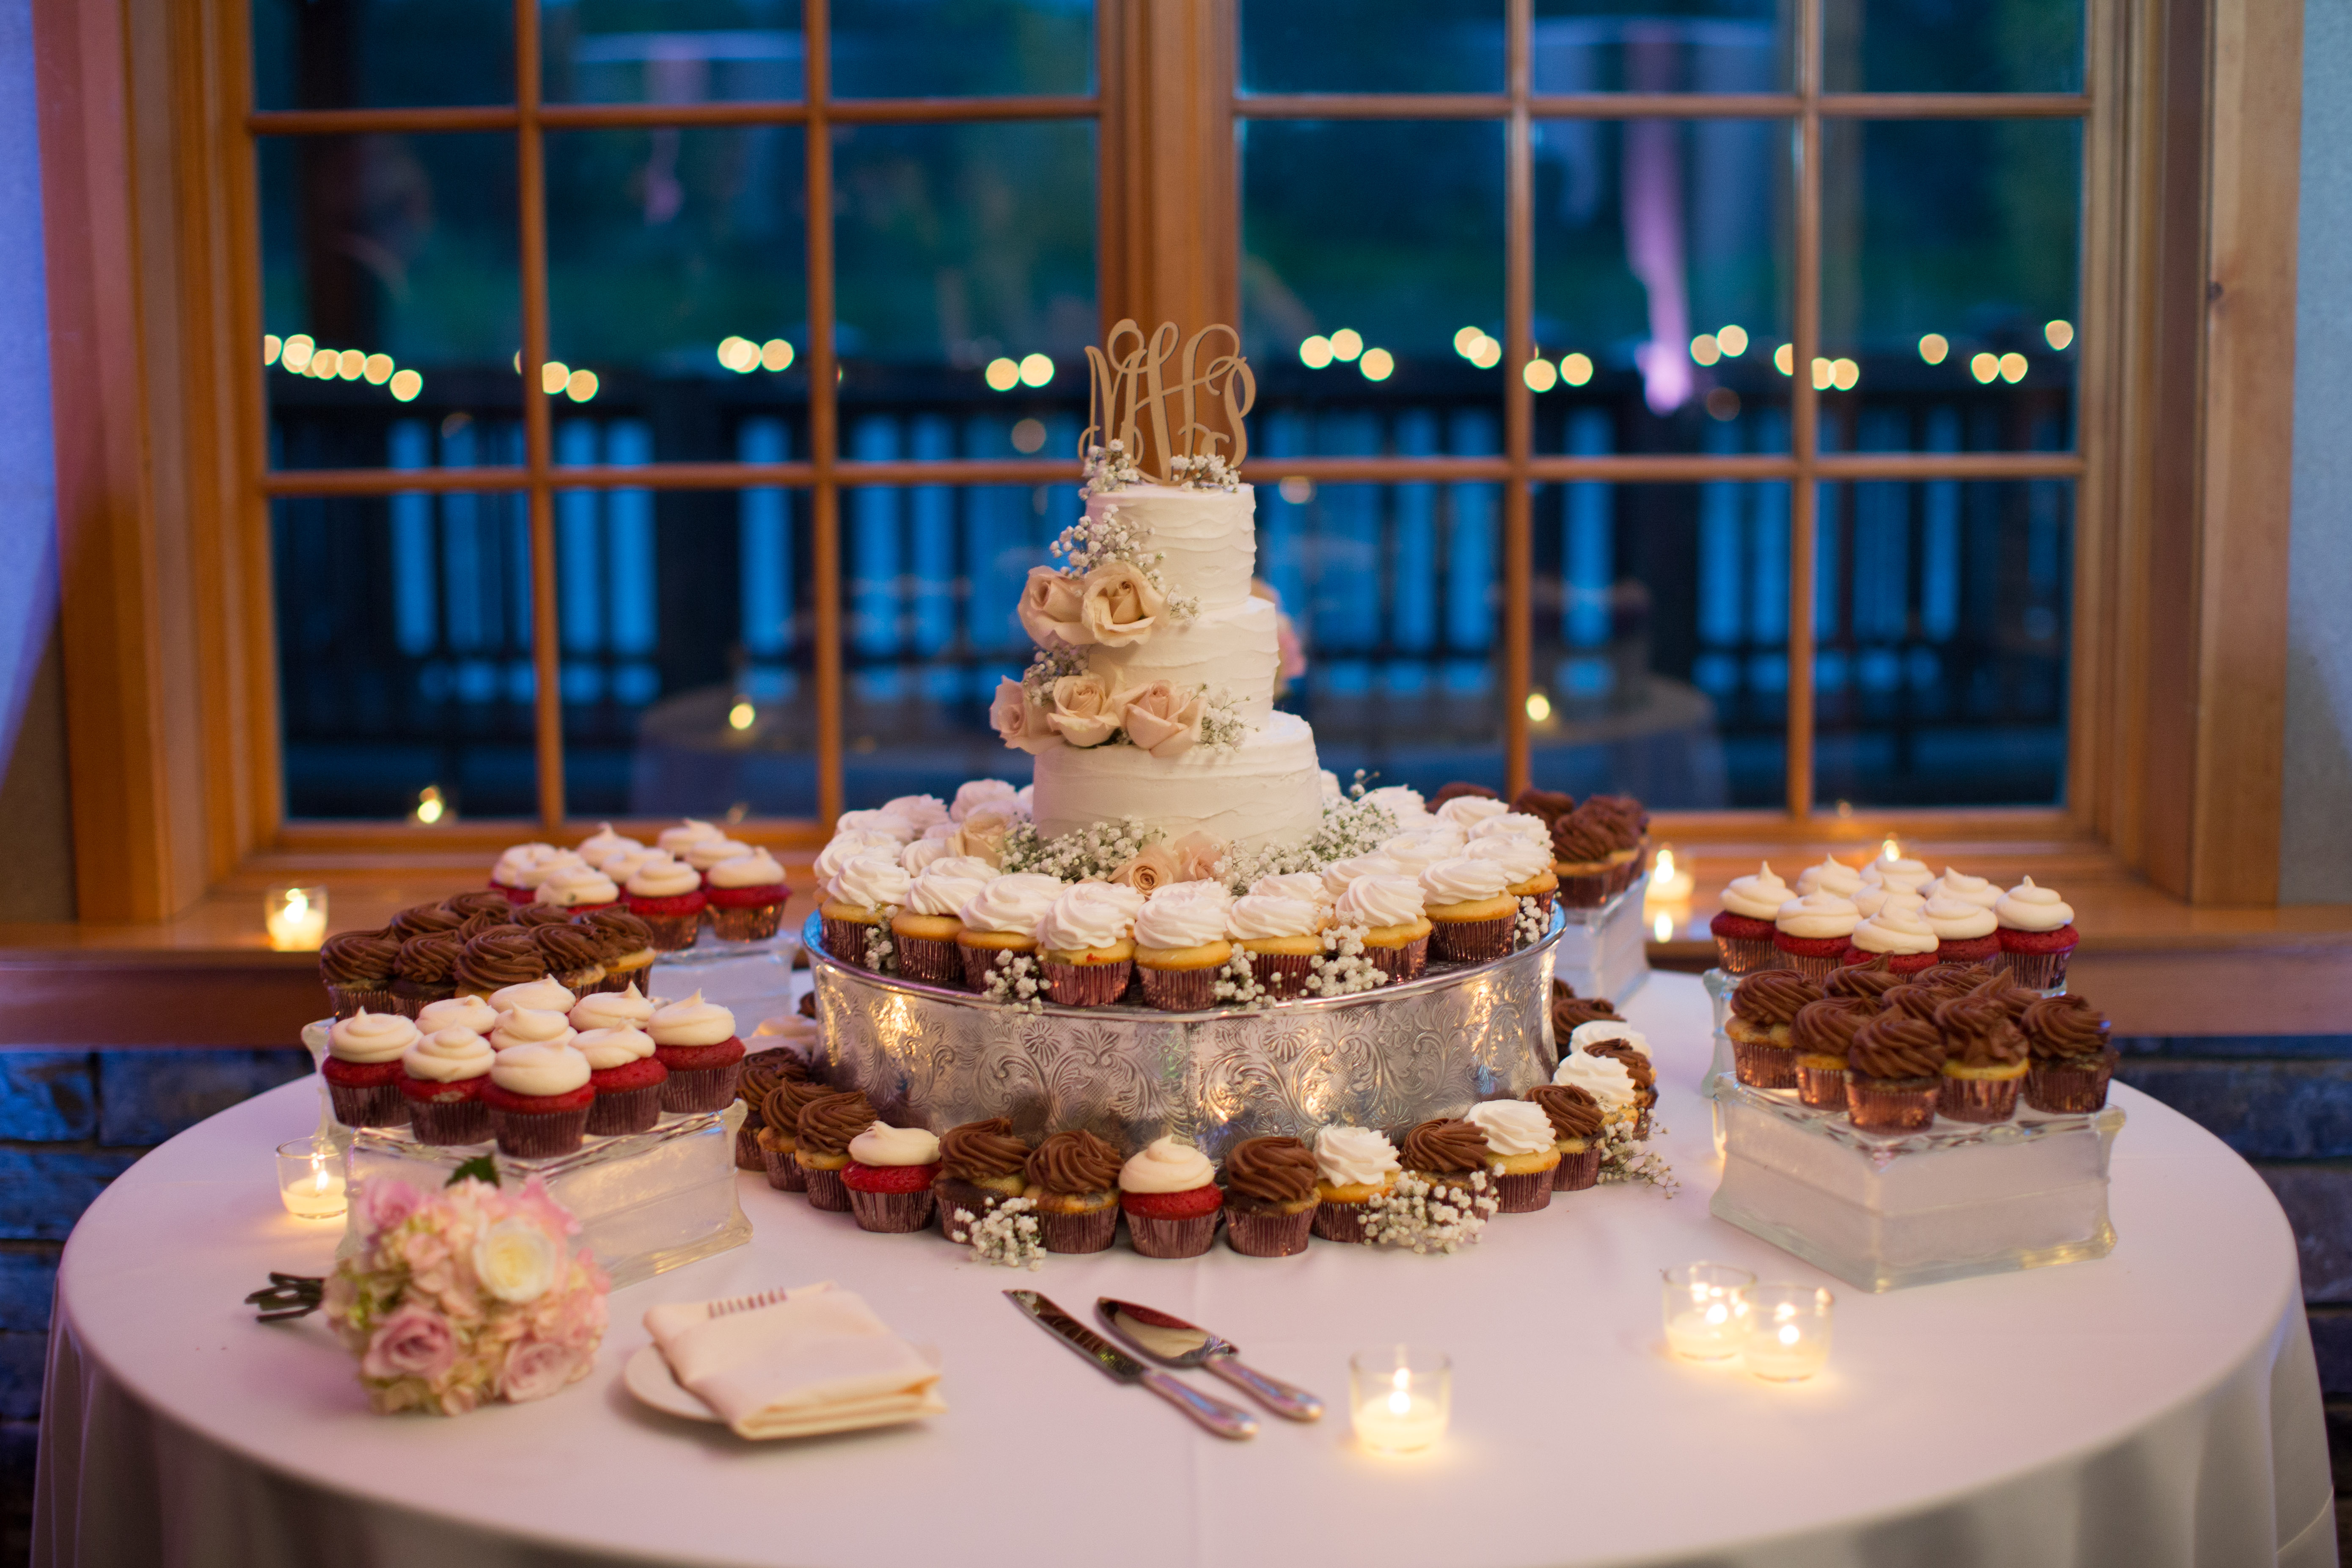 wedding cakes cupcakes cookies and other treats wedding cakes pastries and more east. Black Bedroom Furniture Sets. Home Design Ideas